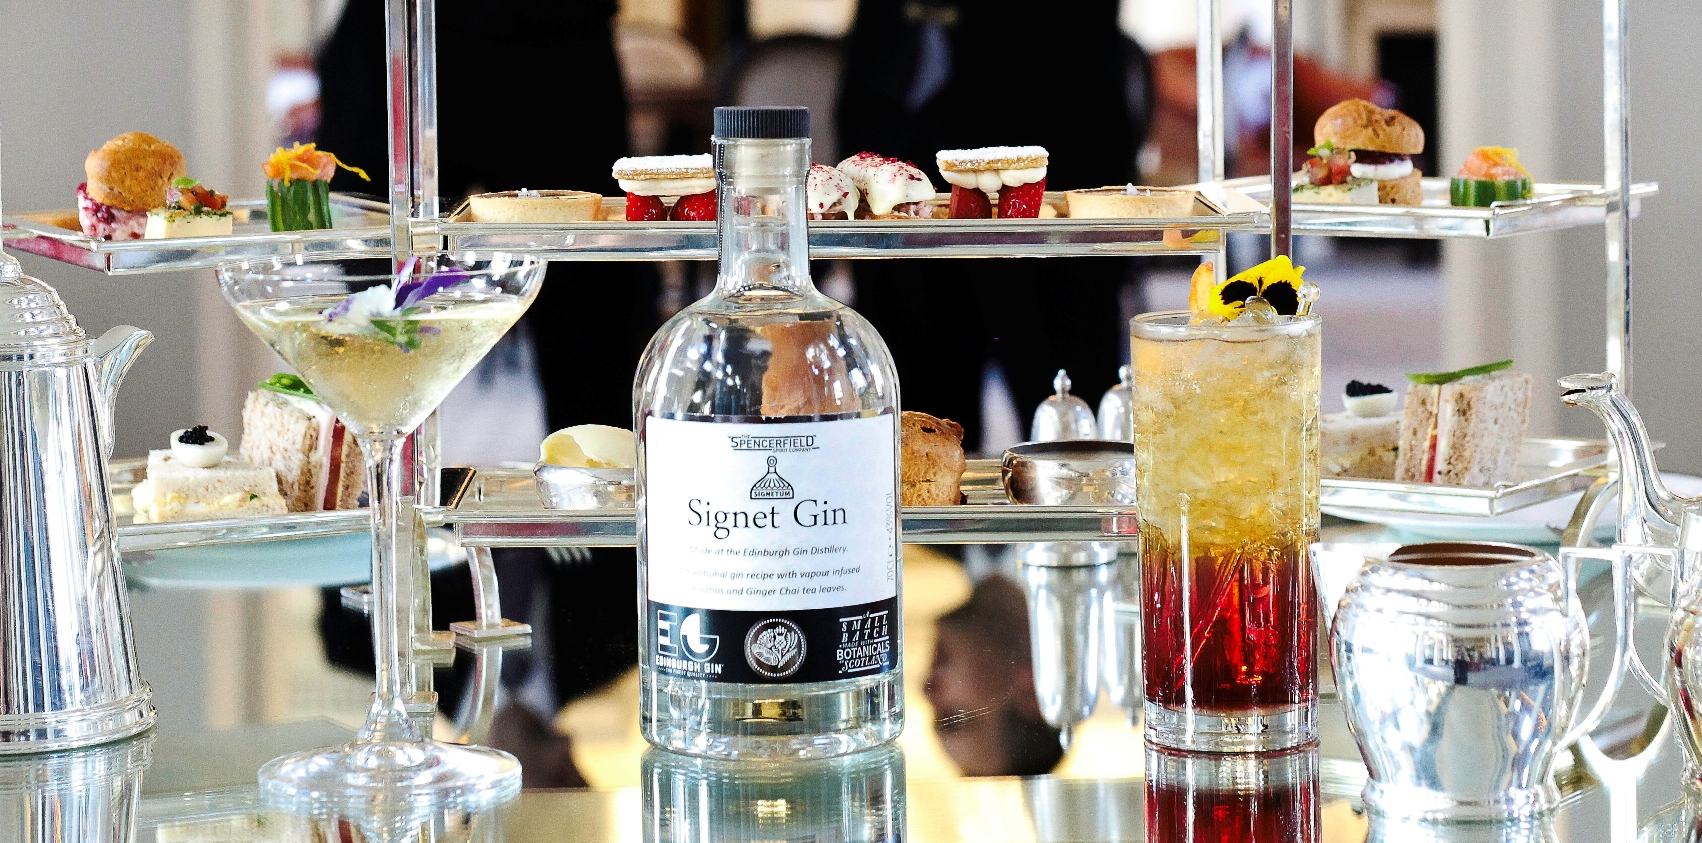 The Signet Gin, afternoon tea in Edinburgh at the Colonnades, Signet Library